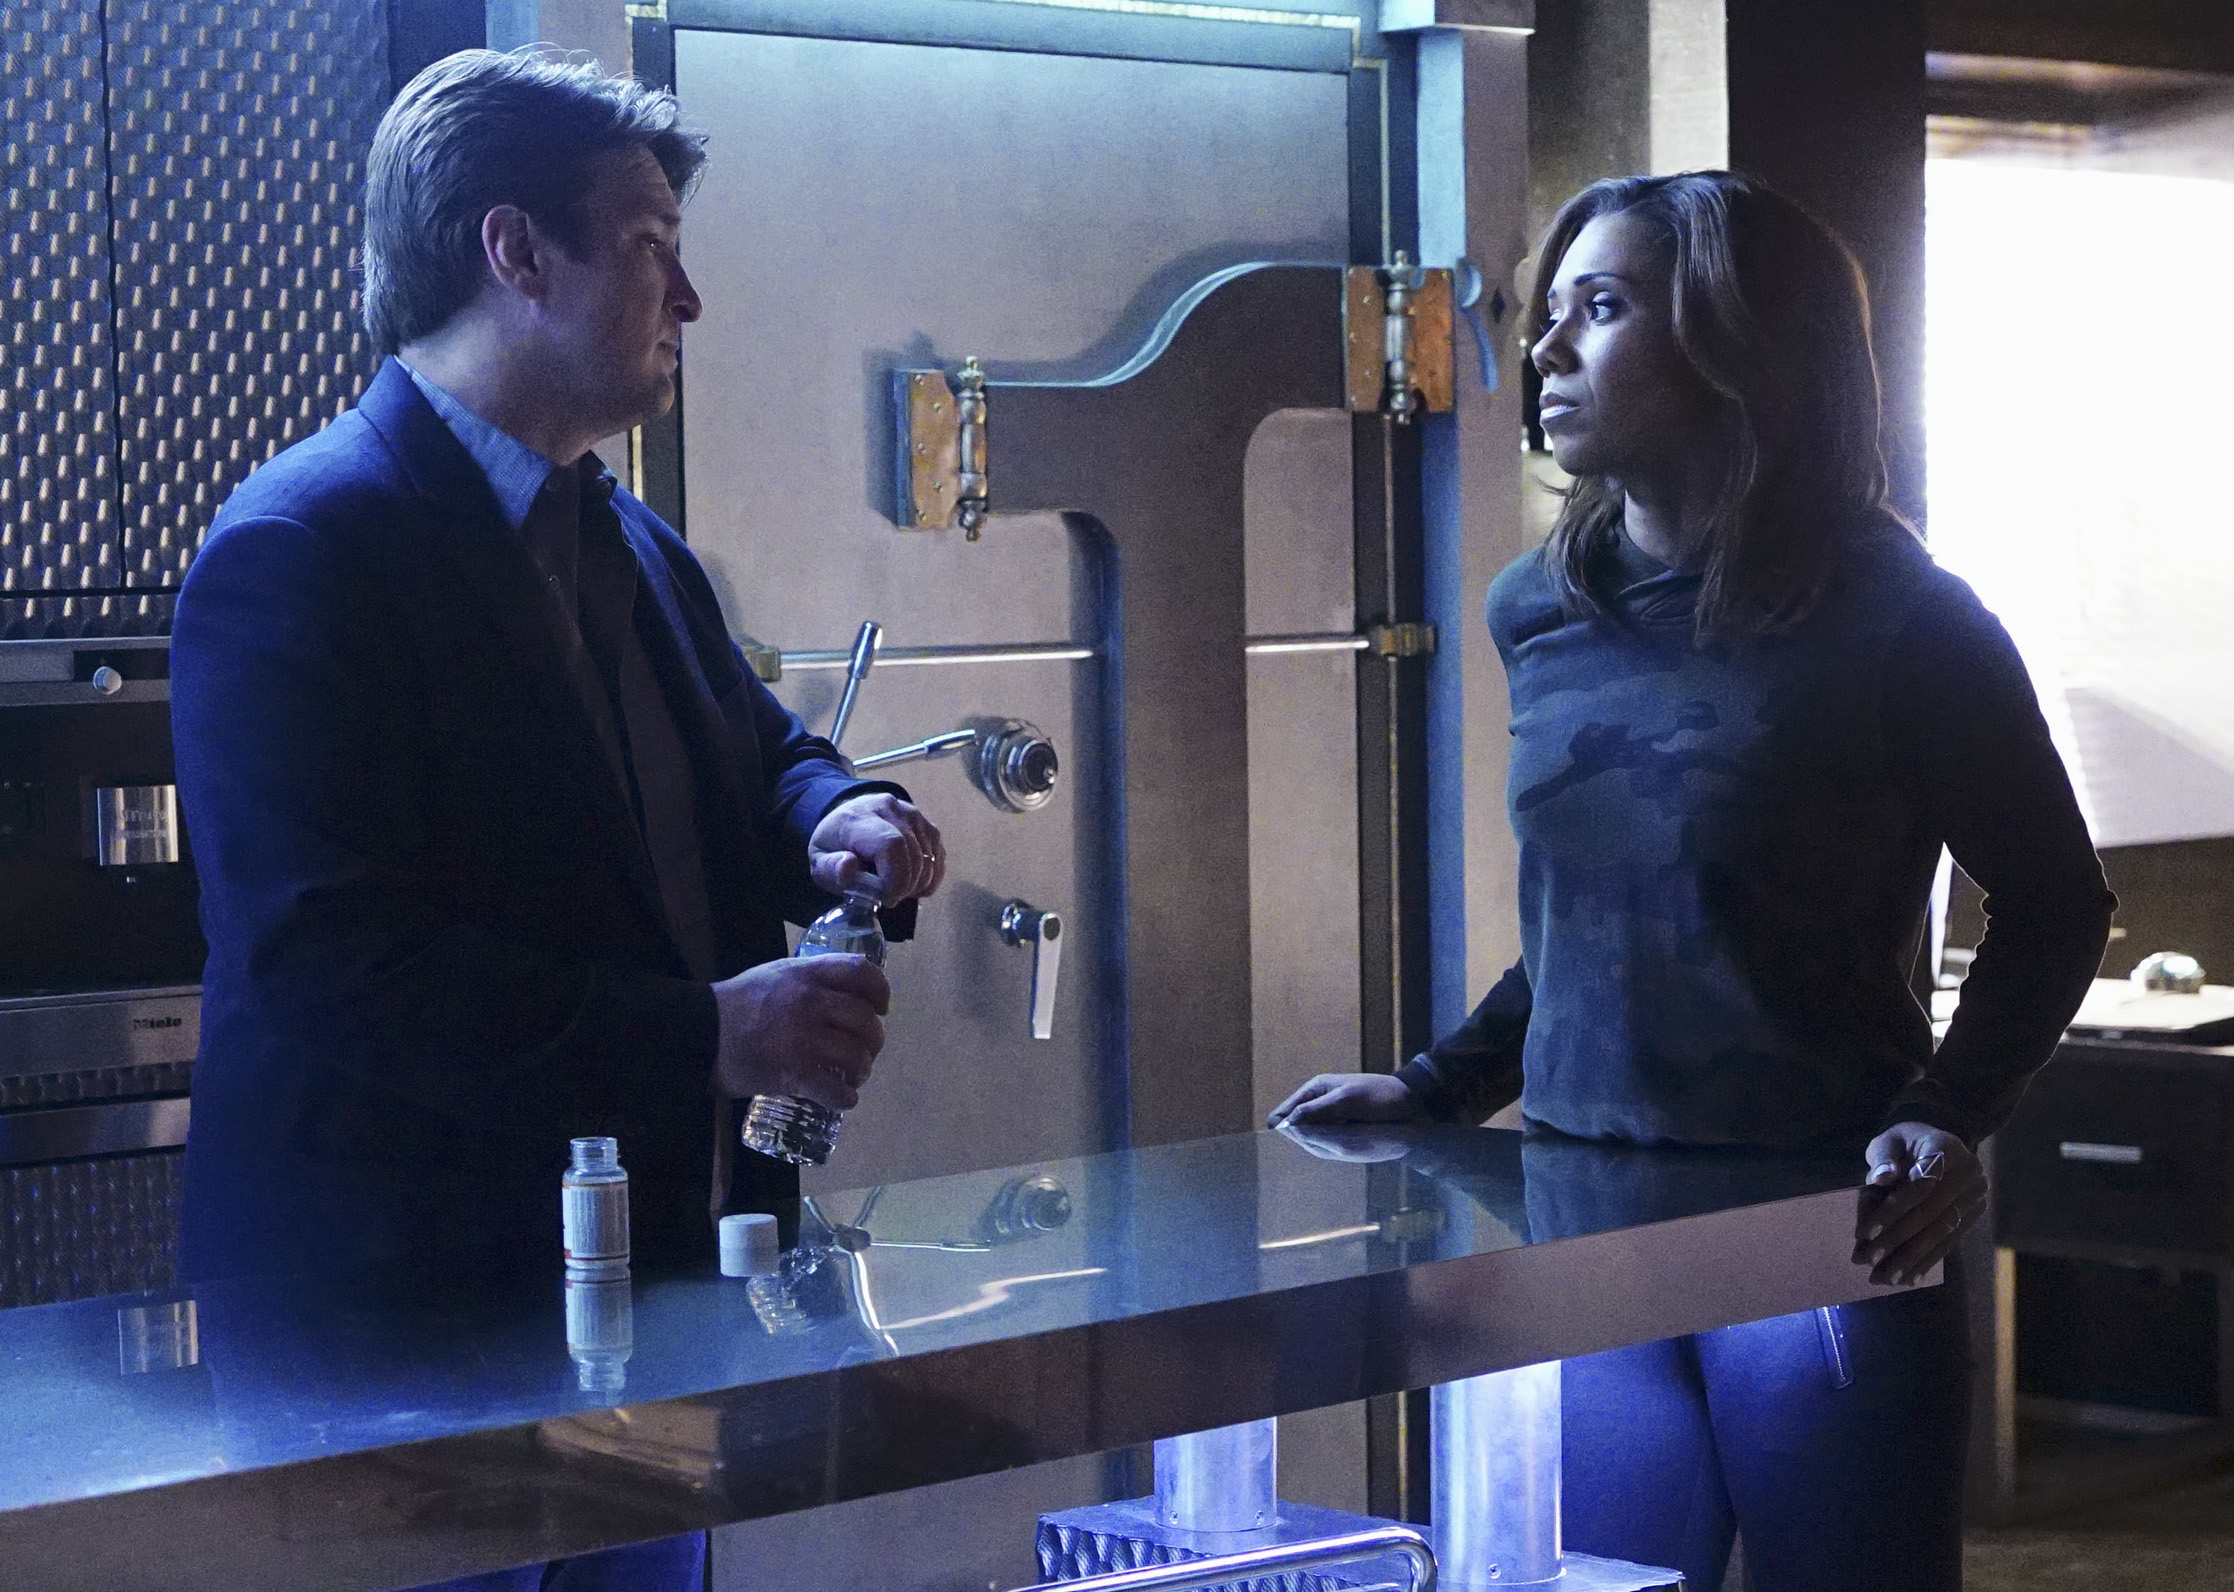 """CASTLE - """"Fidelis Ad Mortem"""" - When a recruit officer at the NYPD Academy is killed, Beckett and the team go back to their old training ground to investigate. Meanwhile, Castle must reckon with a decision with profound consequences for him and Beckett, on """"Castle,"""" MONDAY, MARCH 21 (10:01-11:00 p.m. EDT), on the ABC Television Network. (ABC/Richard Cartwright) NATHAN FILLION, TOKS OLAGUNDOYE"""